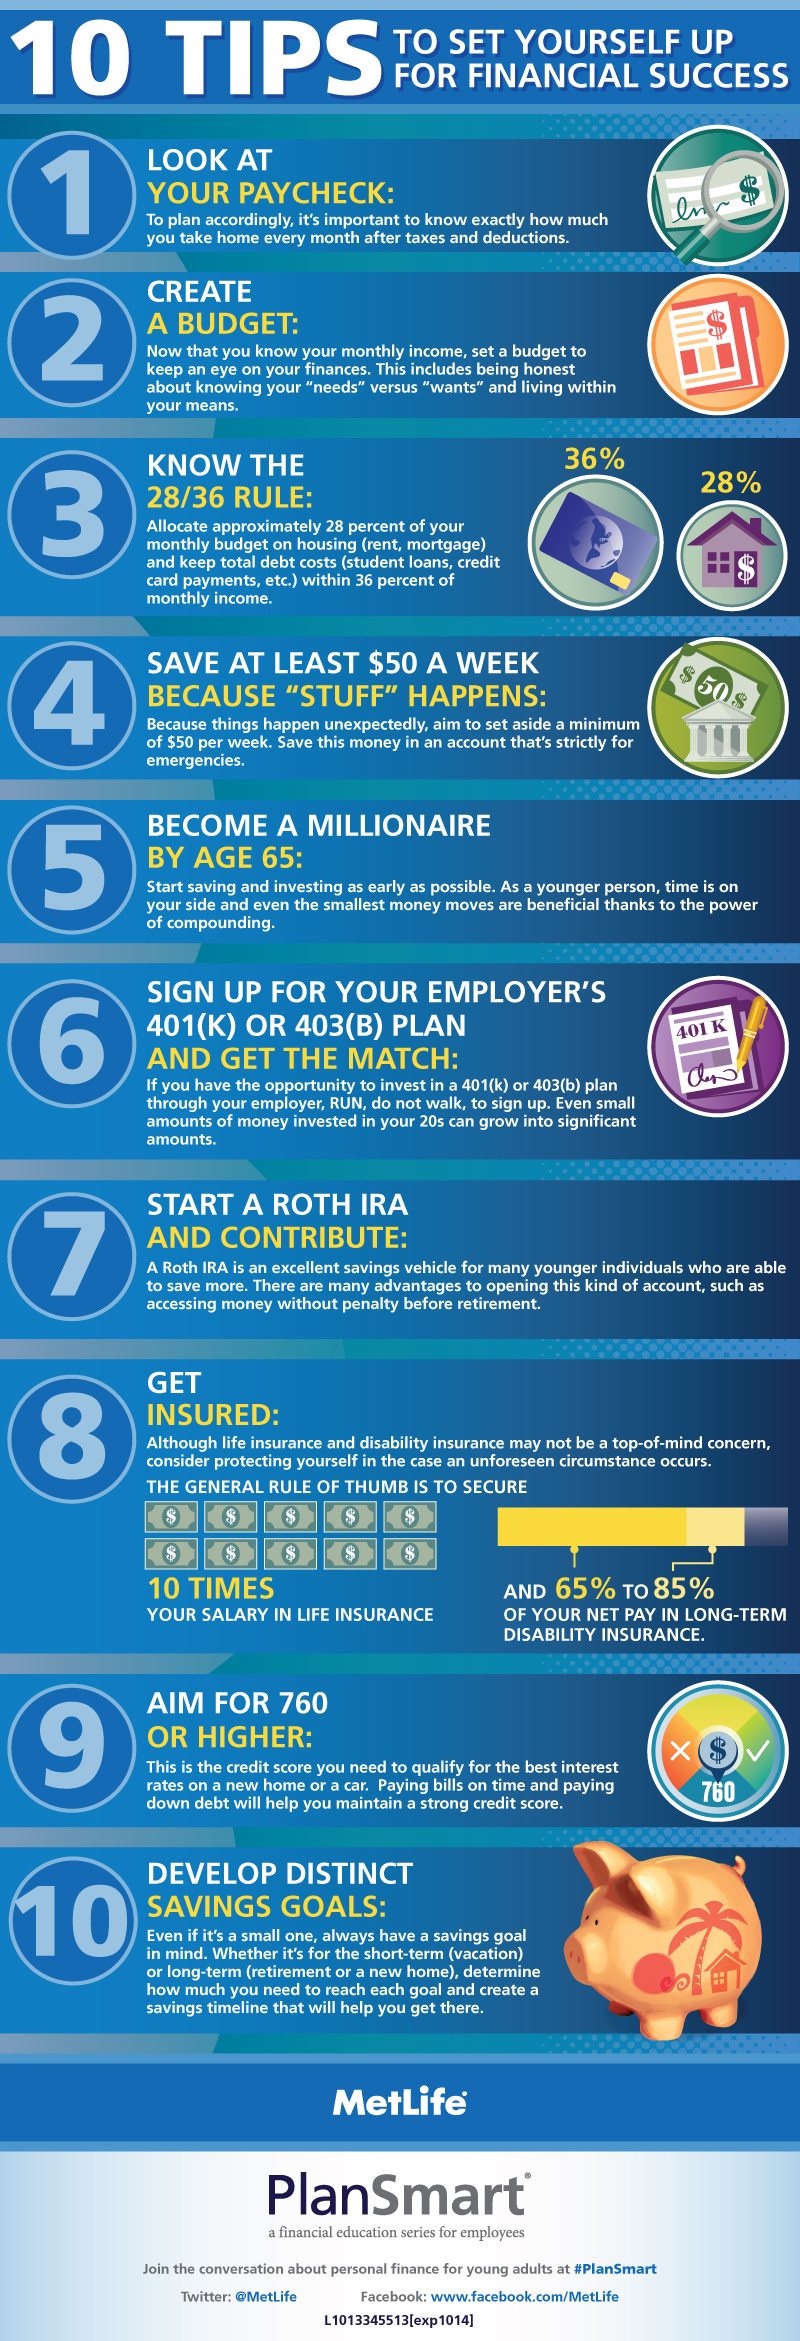 Metlife 10 Tips To Set Yourself Up For Financial Success-1